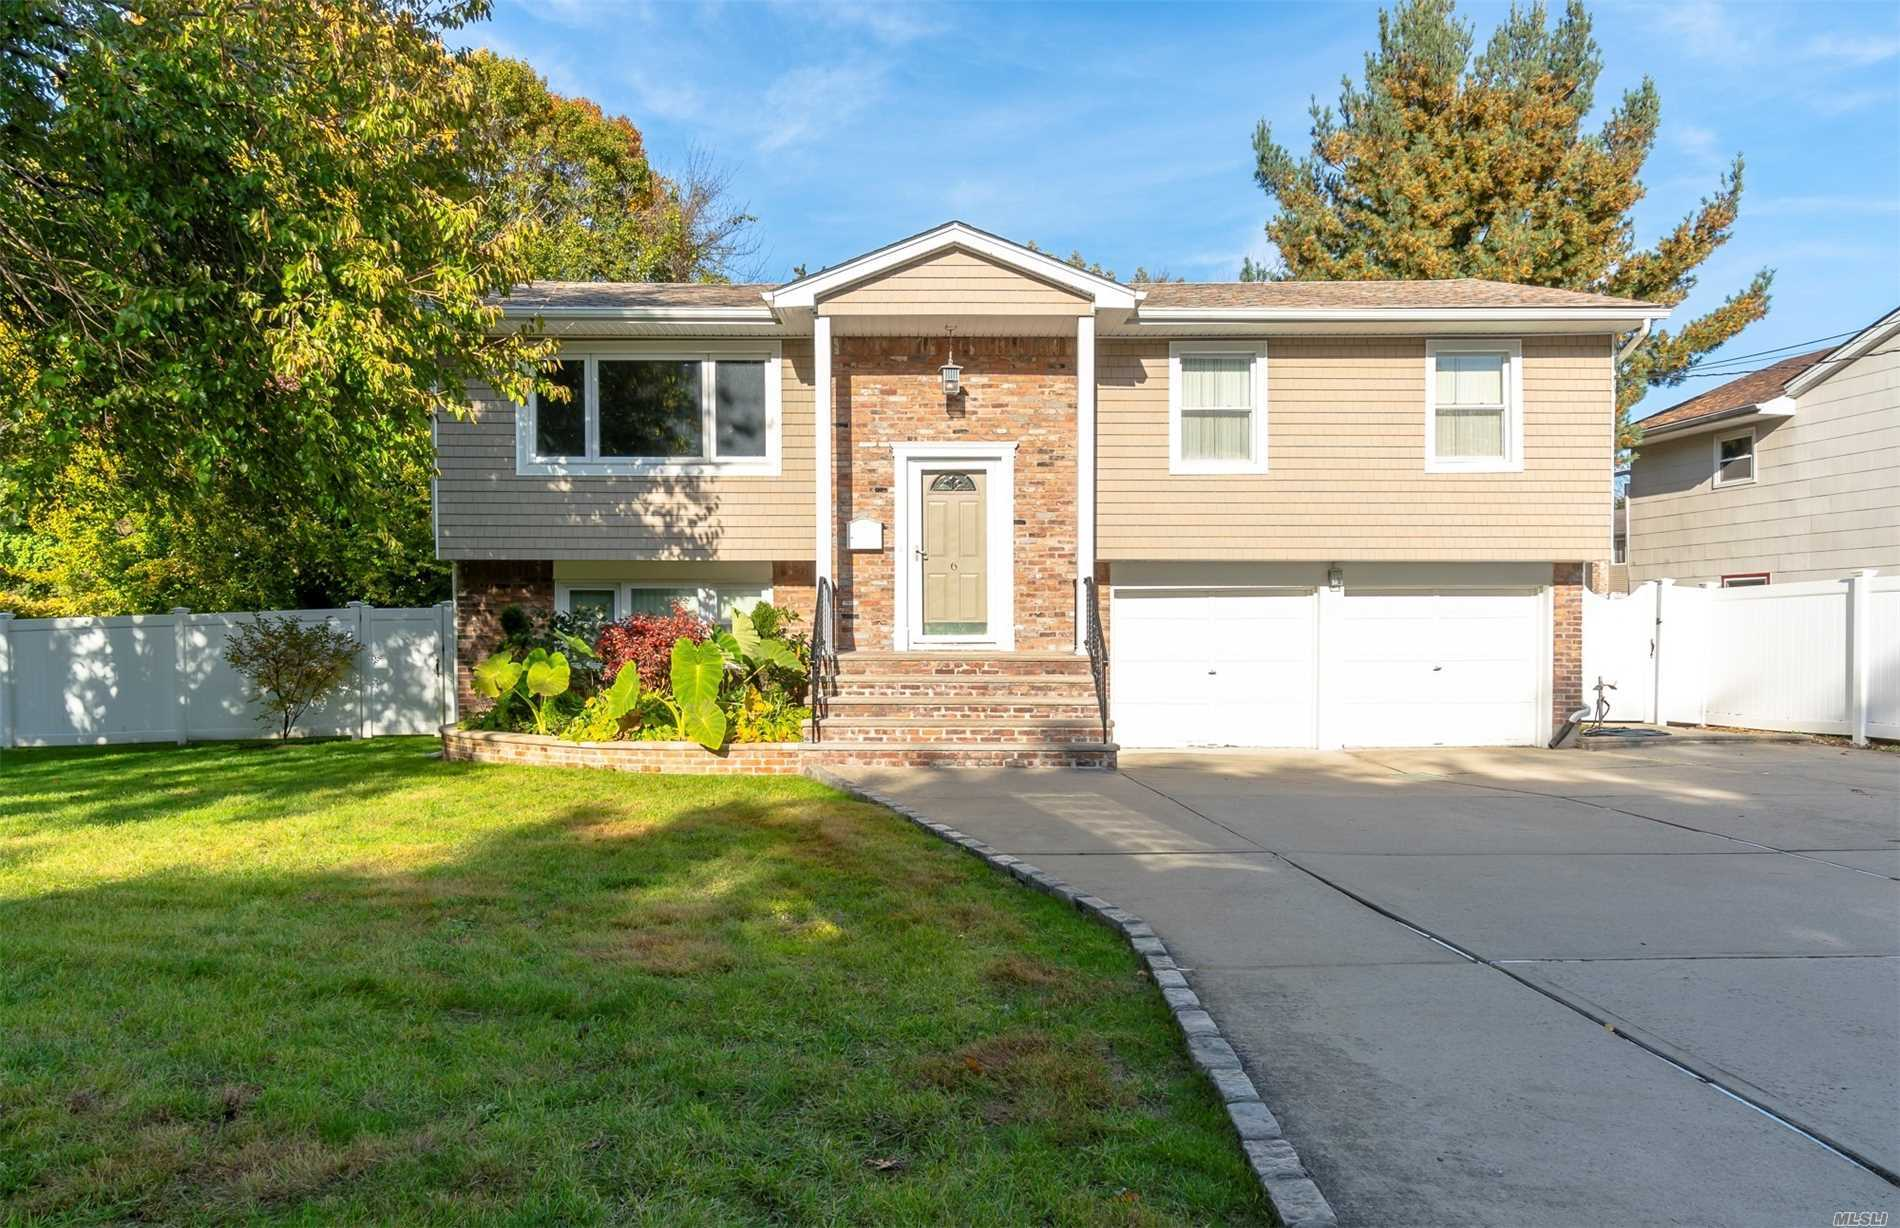 Amazing Hi-Ranch In Baldwin School District! Tucked In On A Small, Quiet Street Between/Adjacent To Freeport & Baldwin! This Lovely 4 Bdrms 2Fbths Hi Ranch Is The Home You Don't Want To Miss. This Home Features - Cac, 2Yrs Young Gas Furnace, New Siding; Wood Floors, & New Composite Deck With Surround Sound That Overlooks A Pristine And Spacious Back Yard- Great For Outdoor Entertaining. With A Lot Size118 X 141 The In-Ground Sprinklers Are An Asset. Additional Amenities, A Must See...